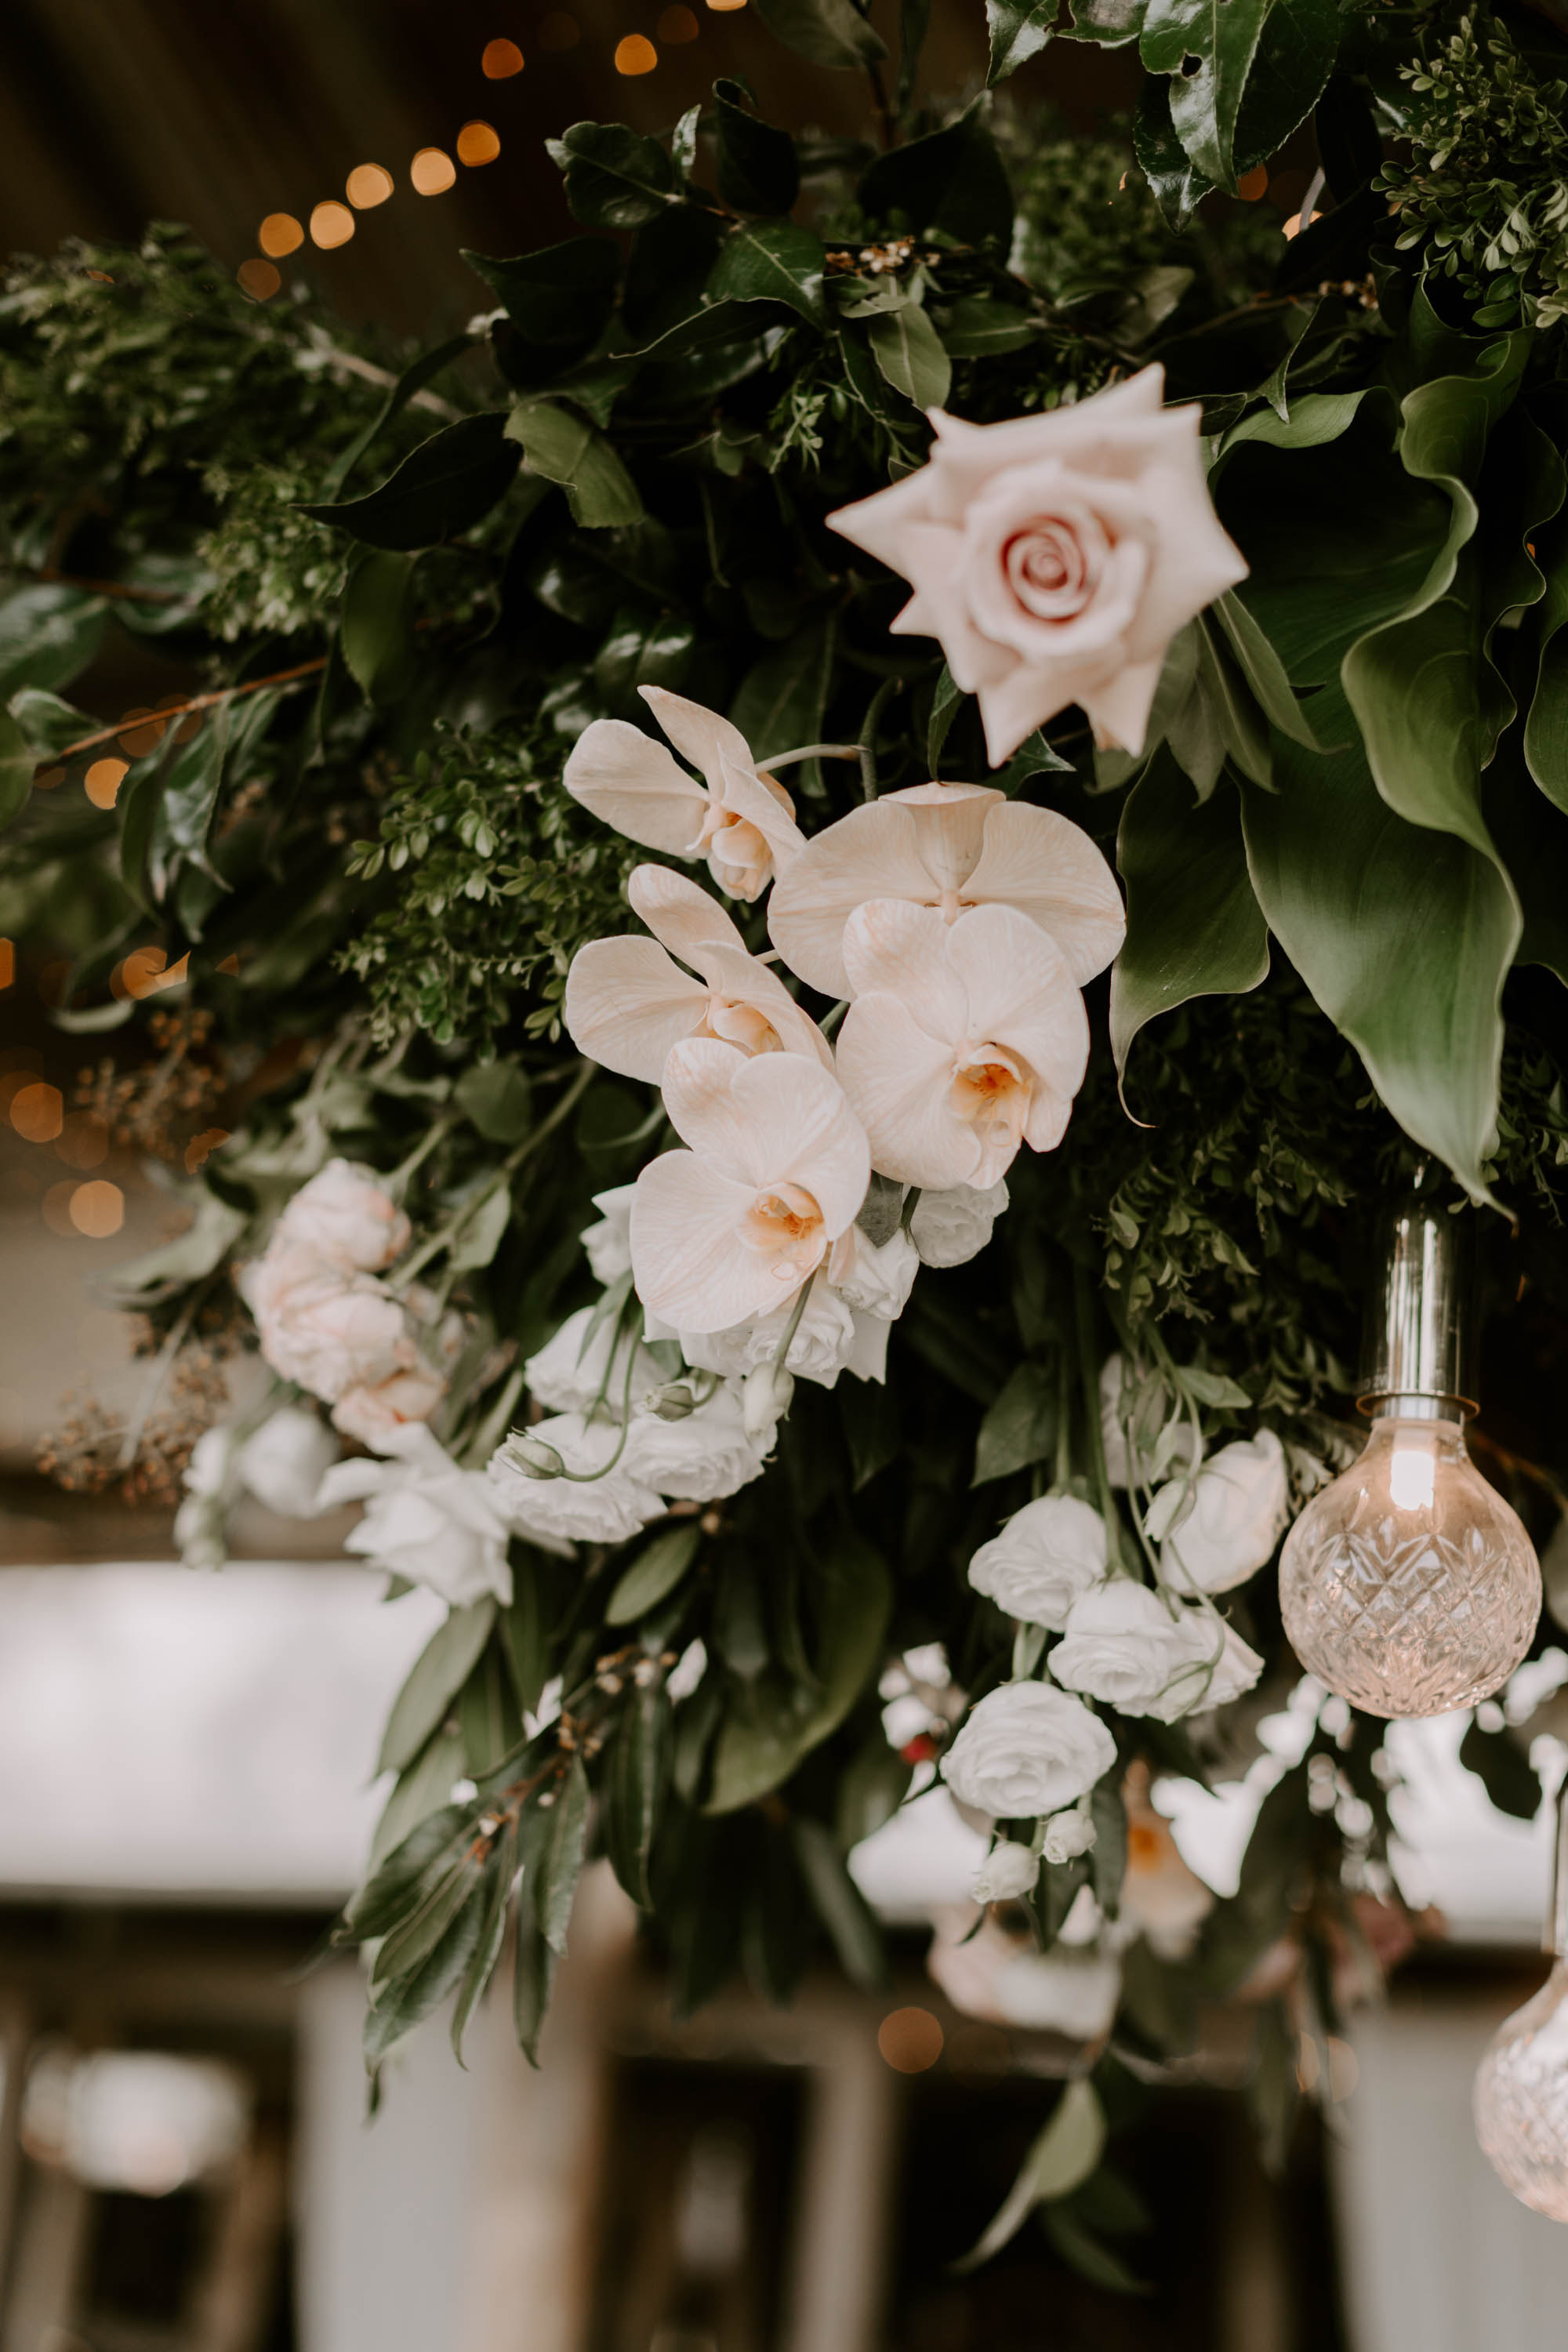 Hanging installation featuring lush greenery and orchids